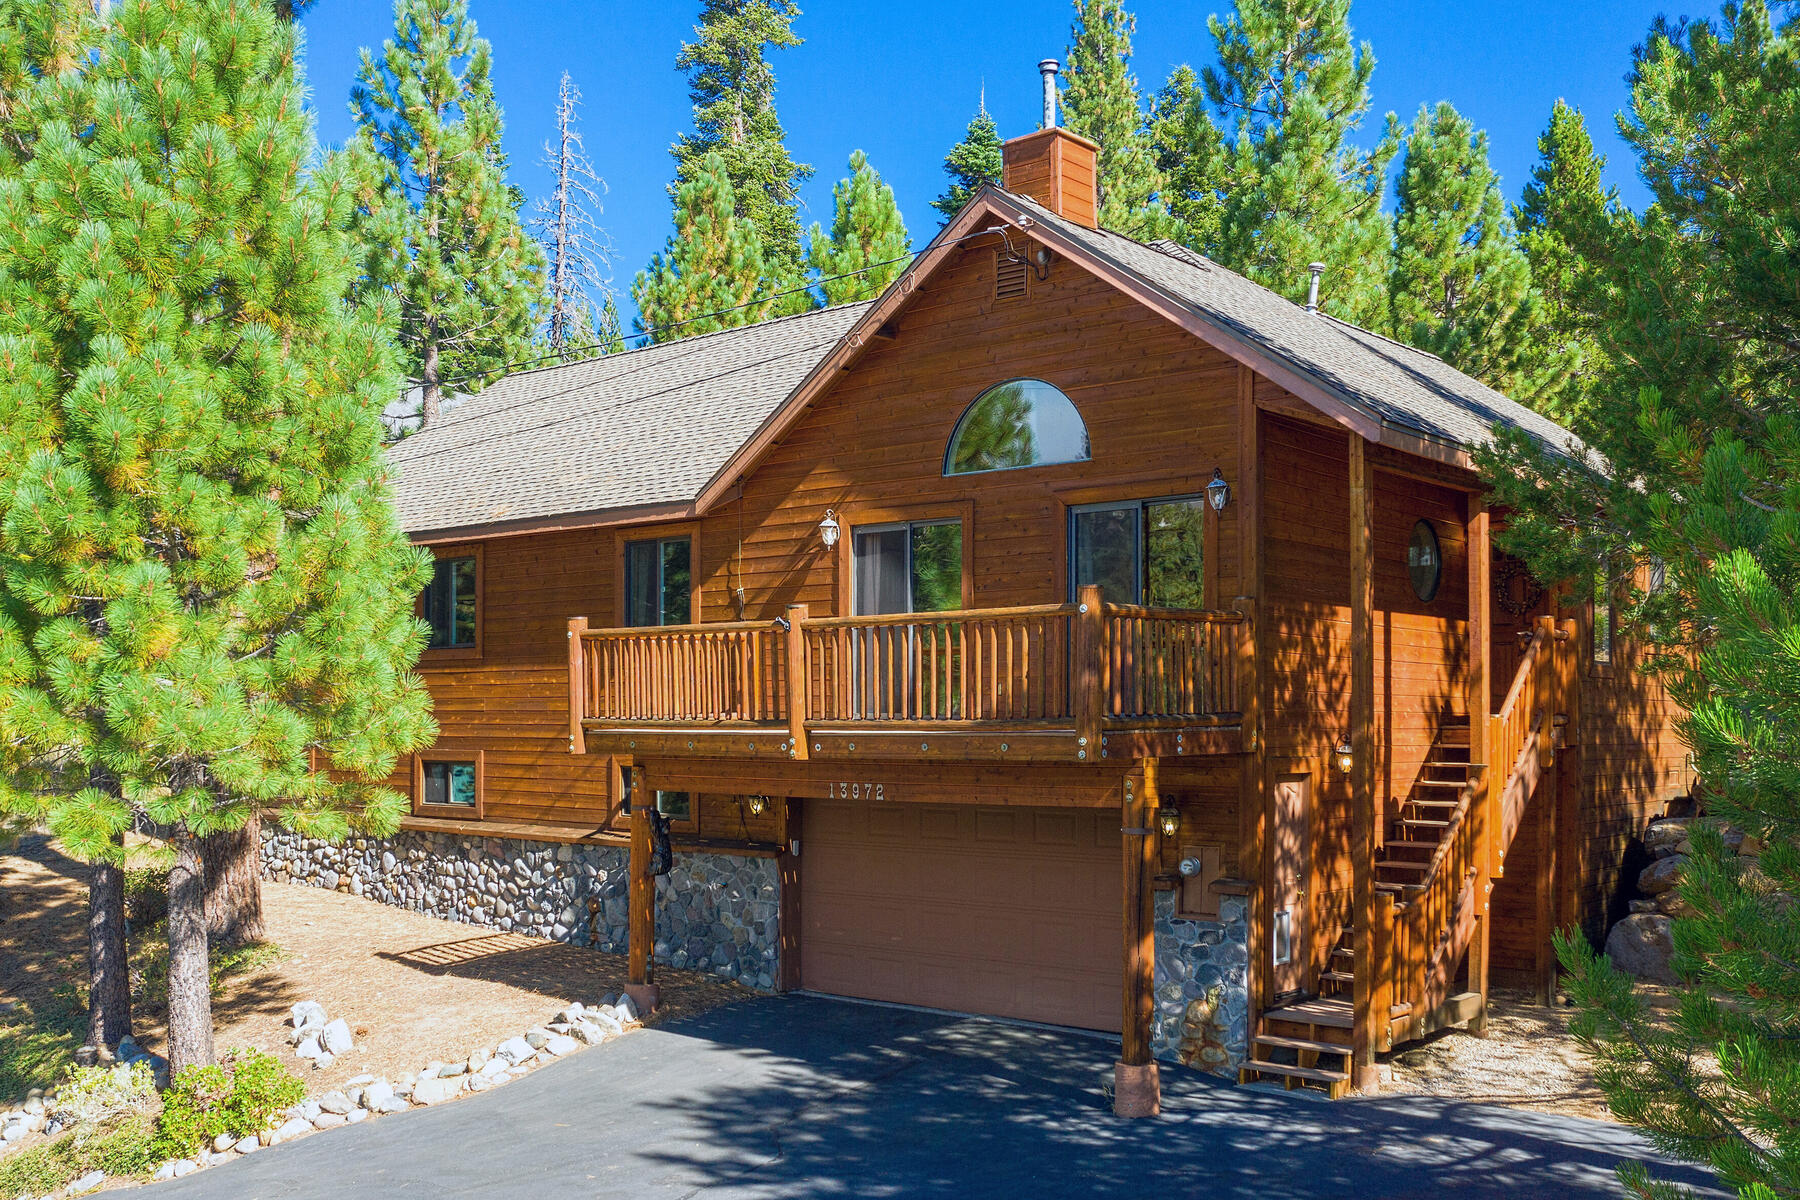 Single Family Homes for Active at Your Adventures Await 13972 Alder Creek Rd Truckee, California 96161 United States